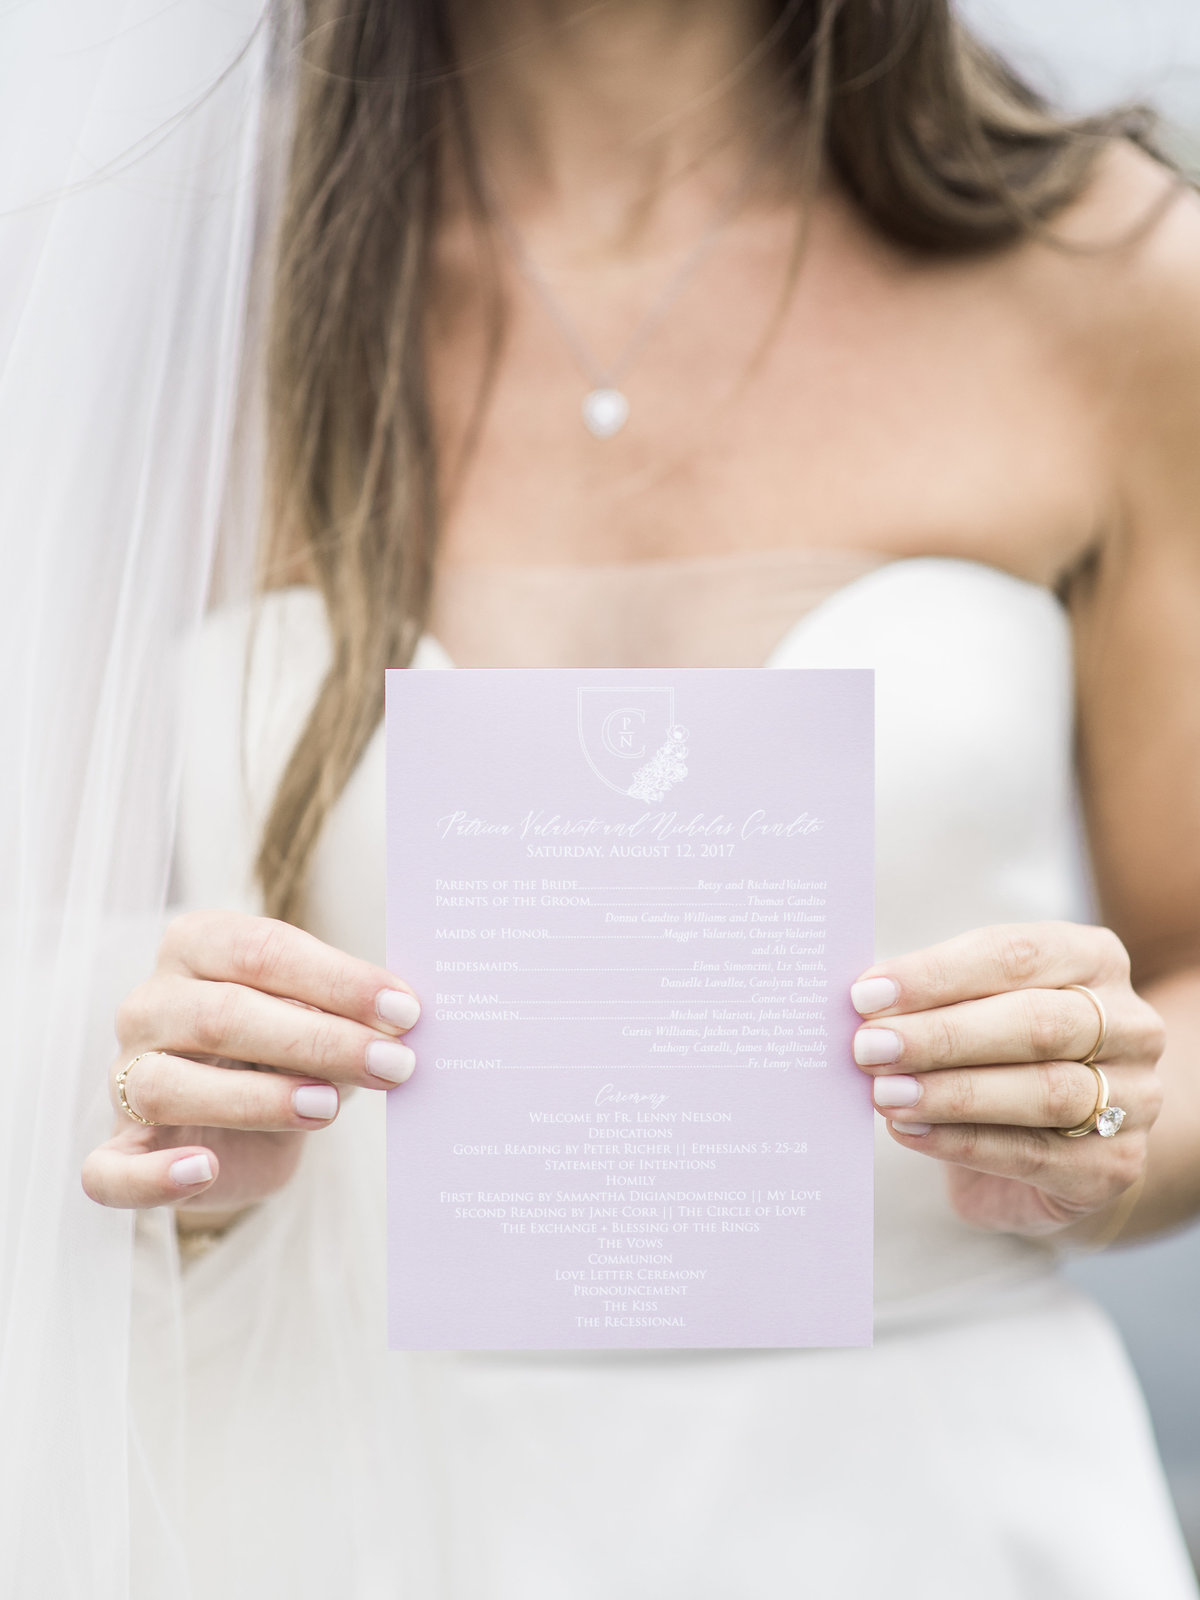 Dusty rose wedding ceremony programs for Cape Cod wedding weekend by top destination wedding planner Always Yours Events